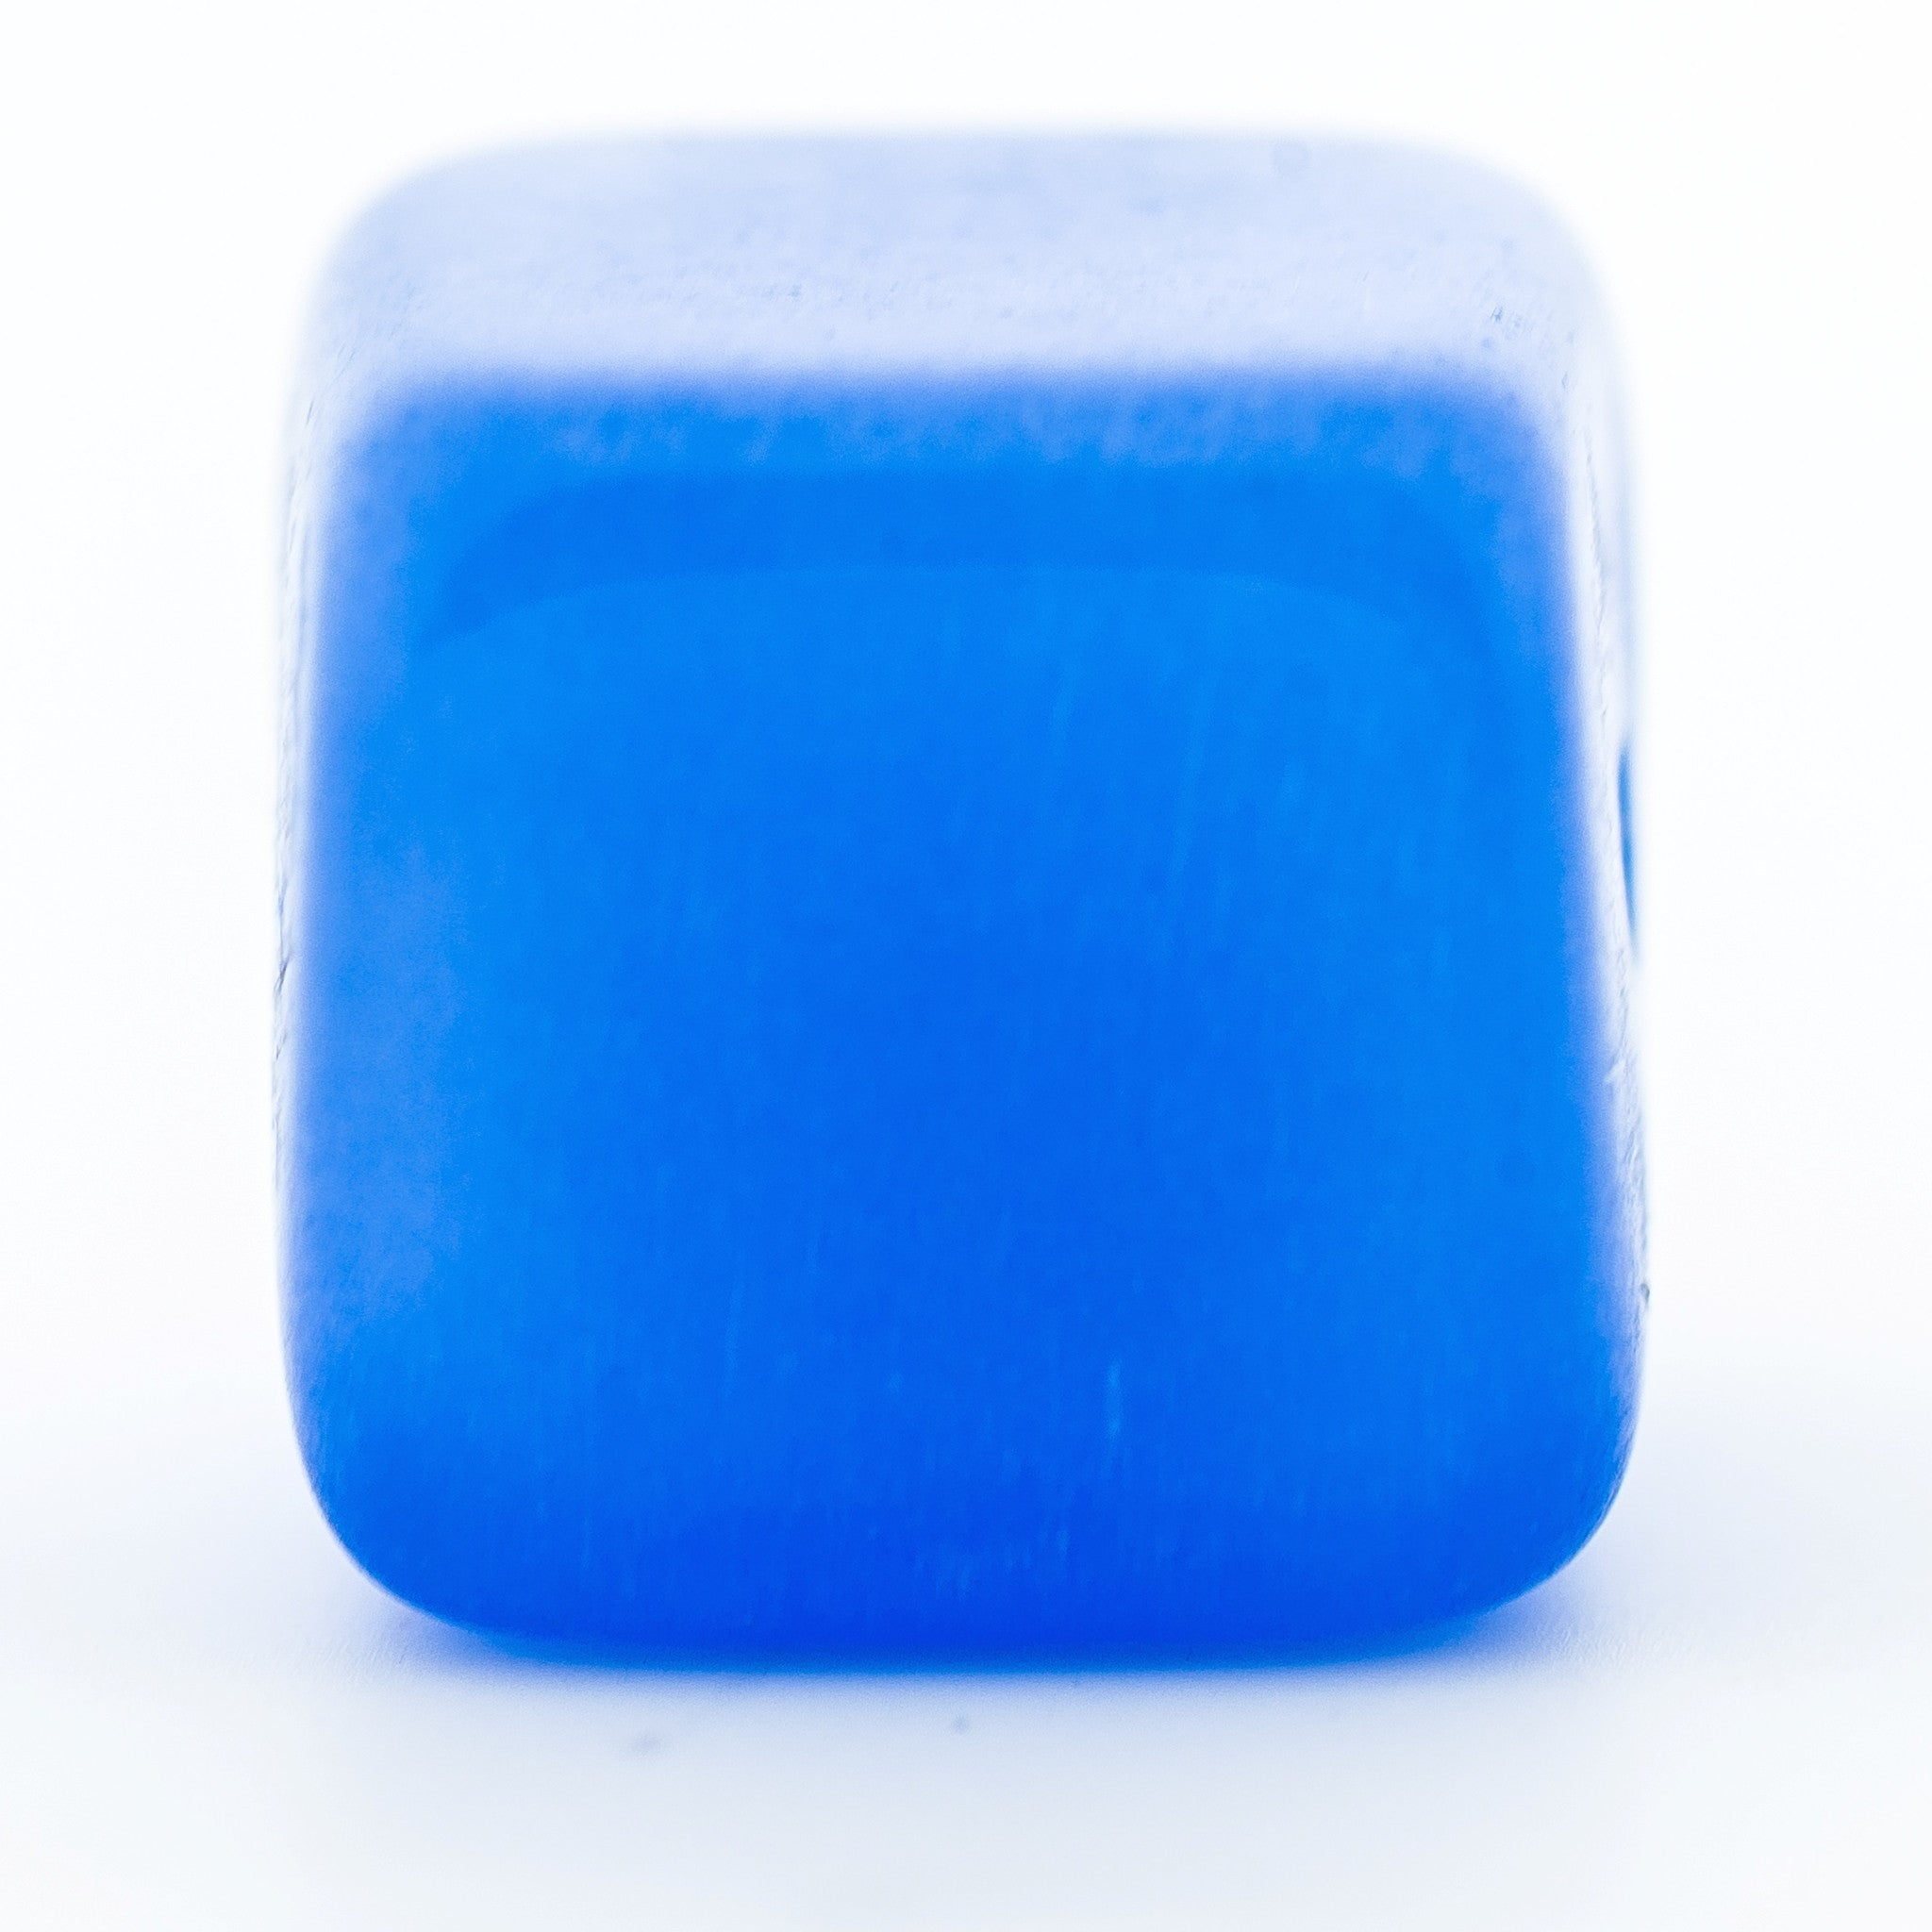 6.5MM Blue Quartz Glass Cube Bead (72 pieces)